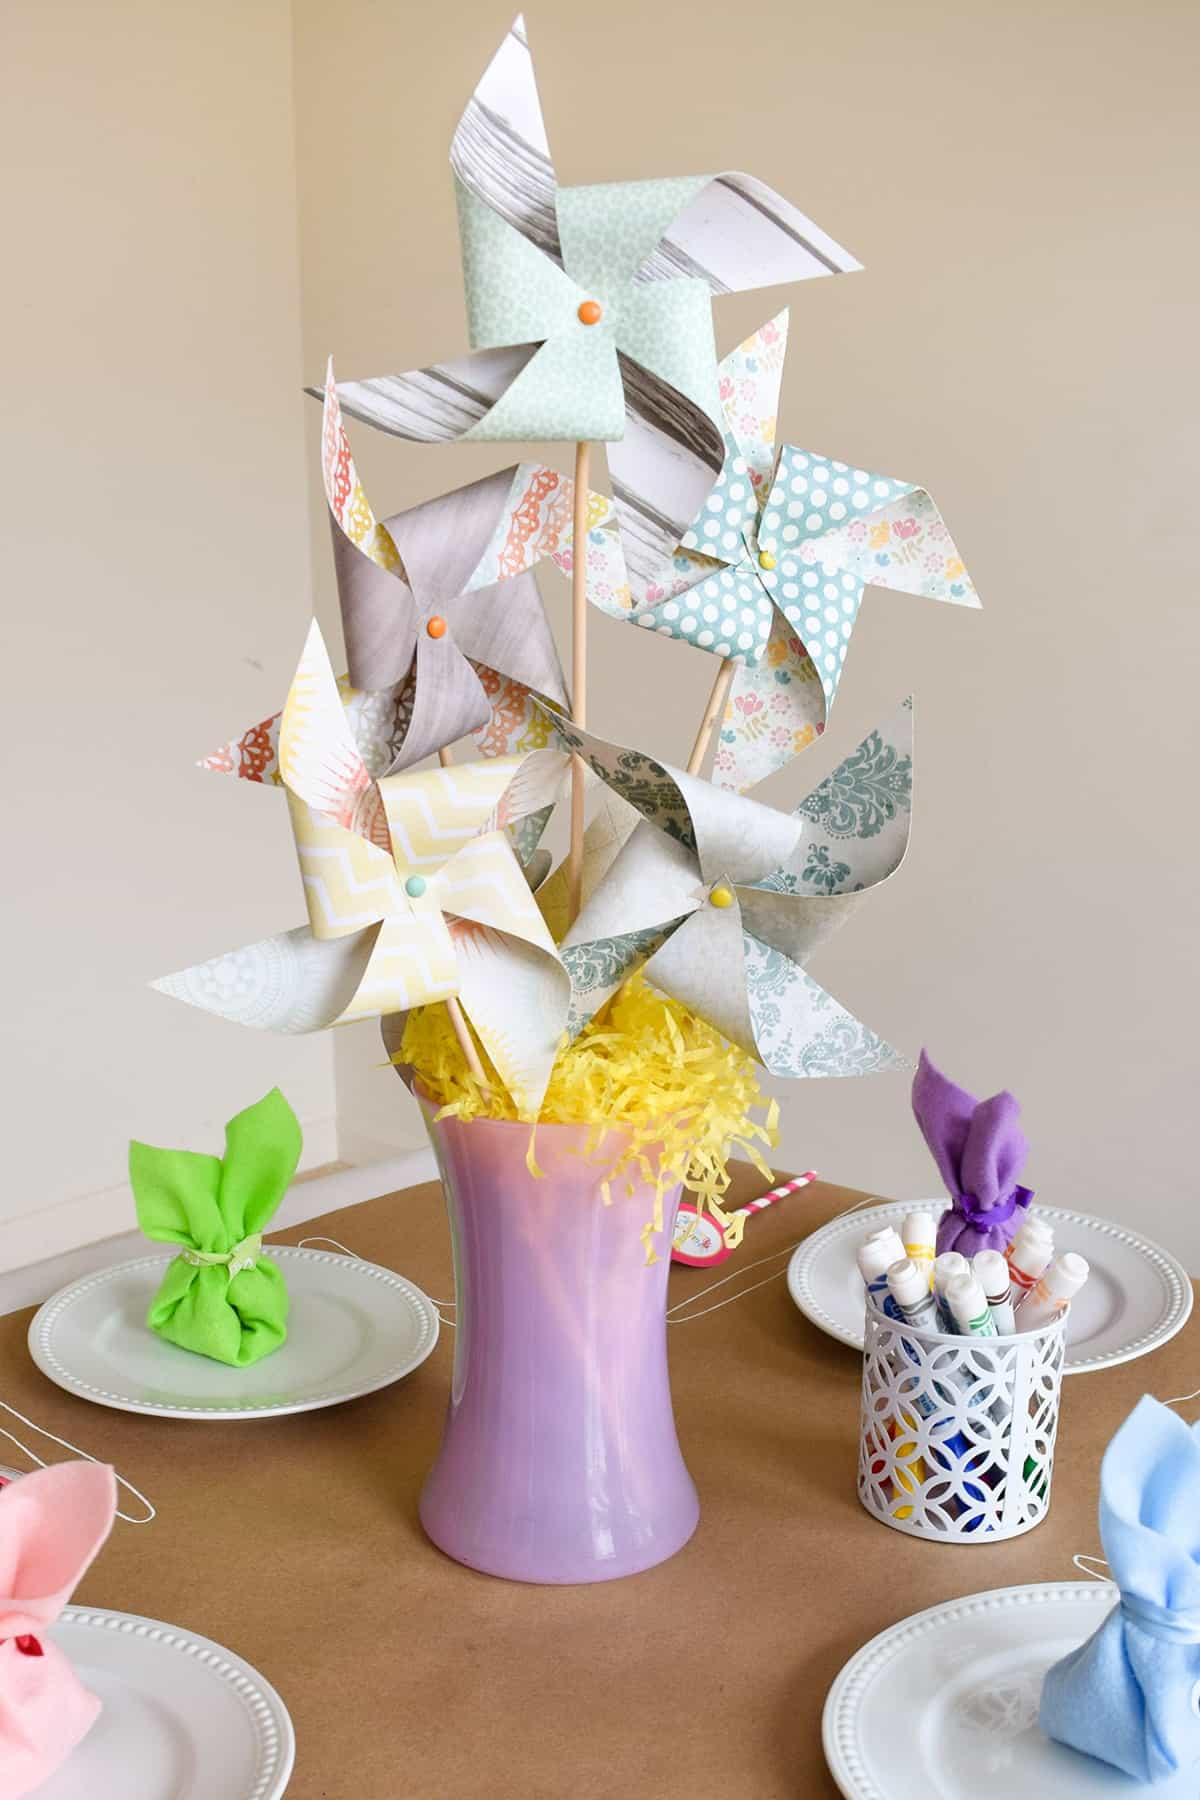 Pinwheel Centerpiece for the dining table with colorful printed pinwheels in purple vase with yellow Easter grass on brown table.